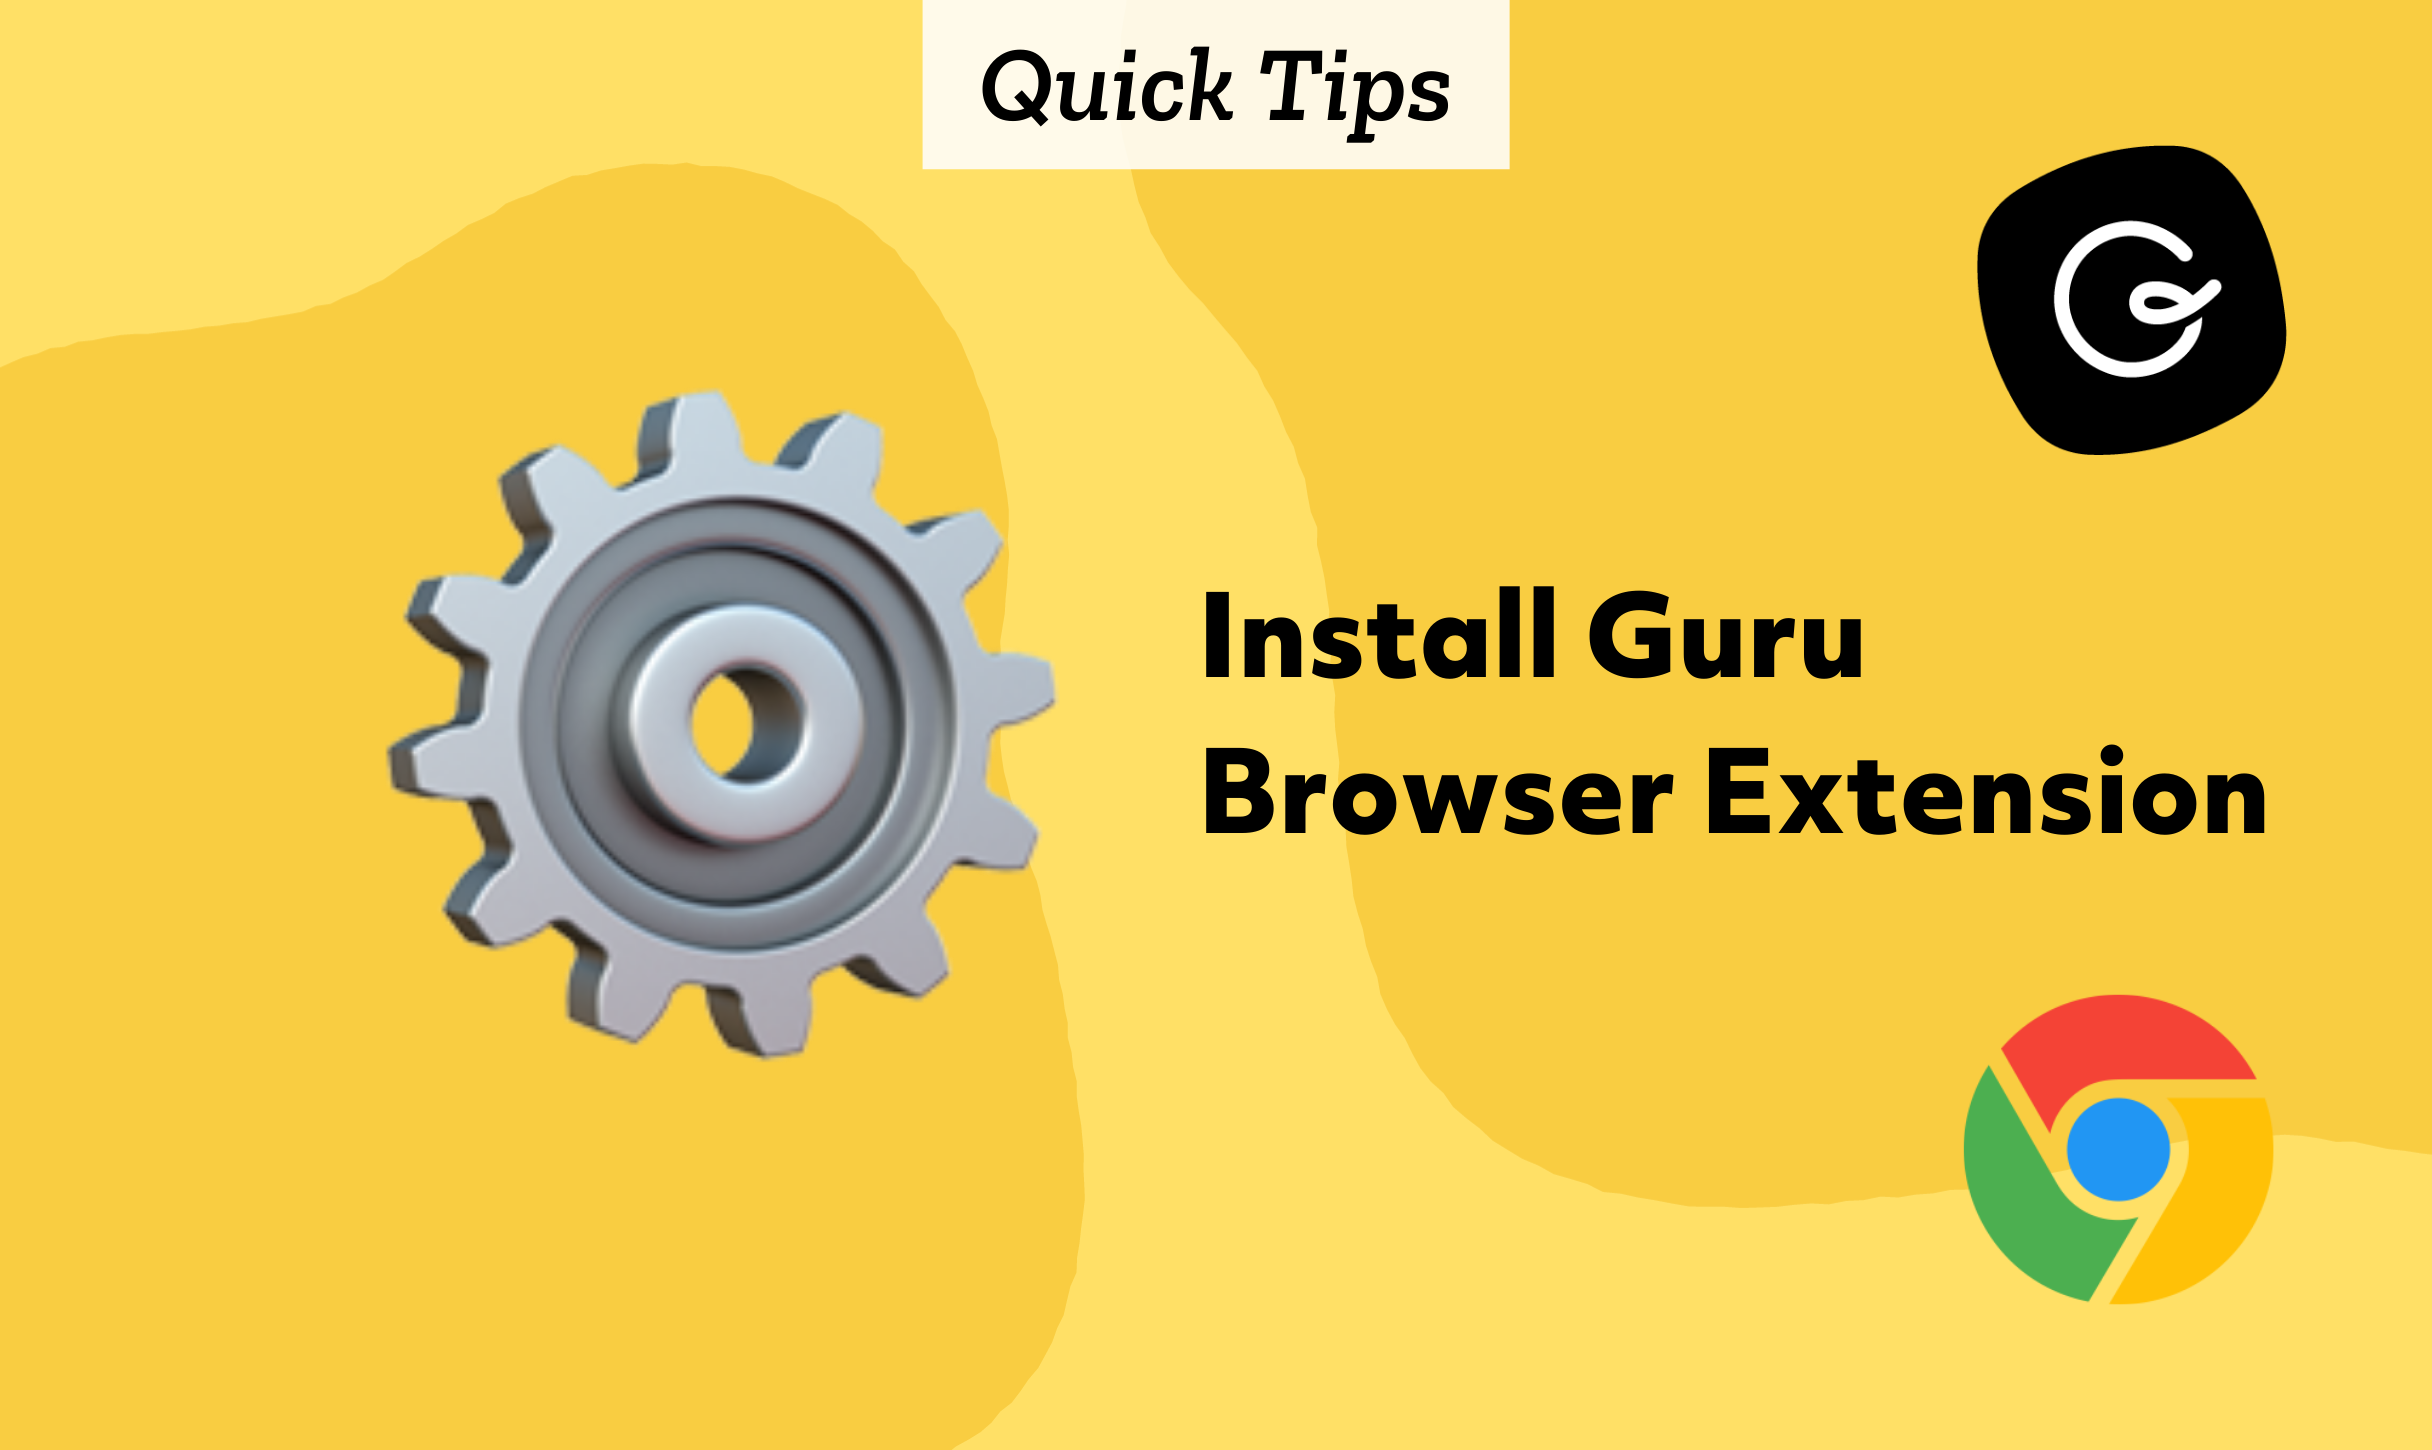 Quick Tips: Install Guru Browser Extension